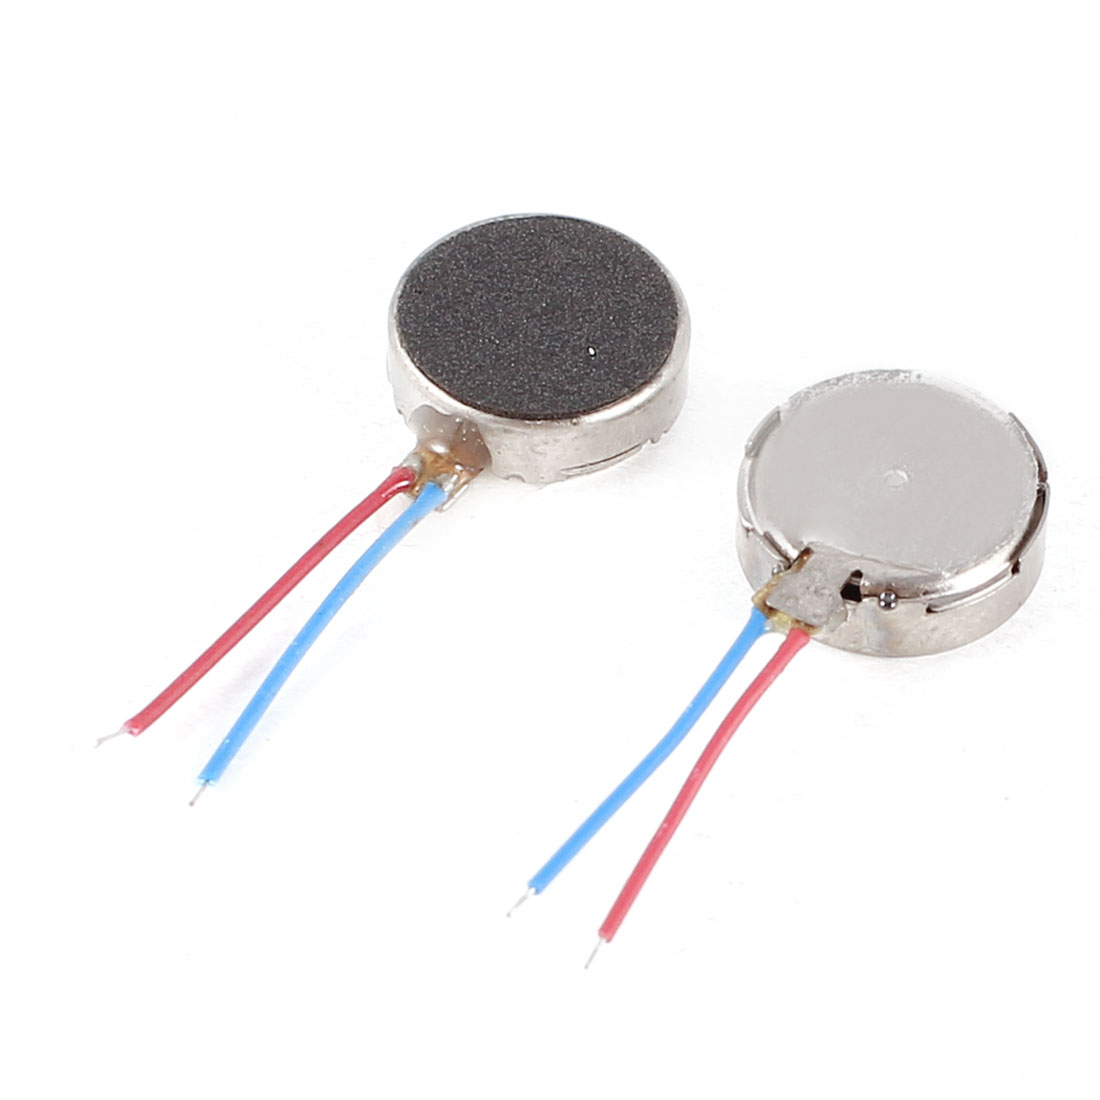 2-Pcs-DC-3V-10mm-x-3-5mm-1030-Cell-Phone-Coin-Flat-Vibrating-Vibration-Motor